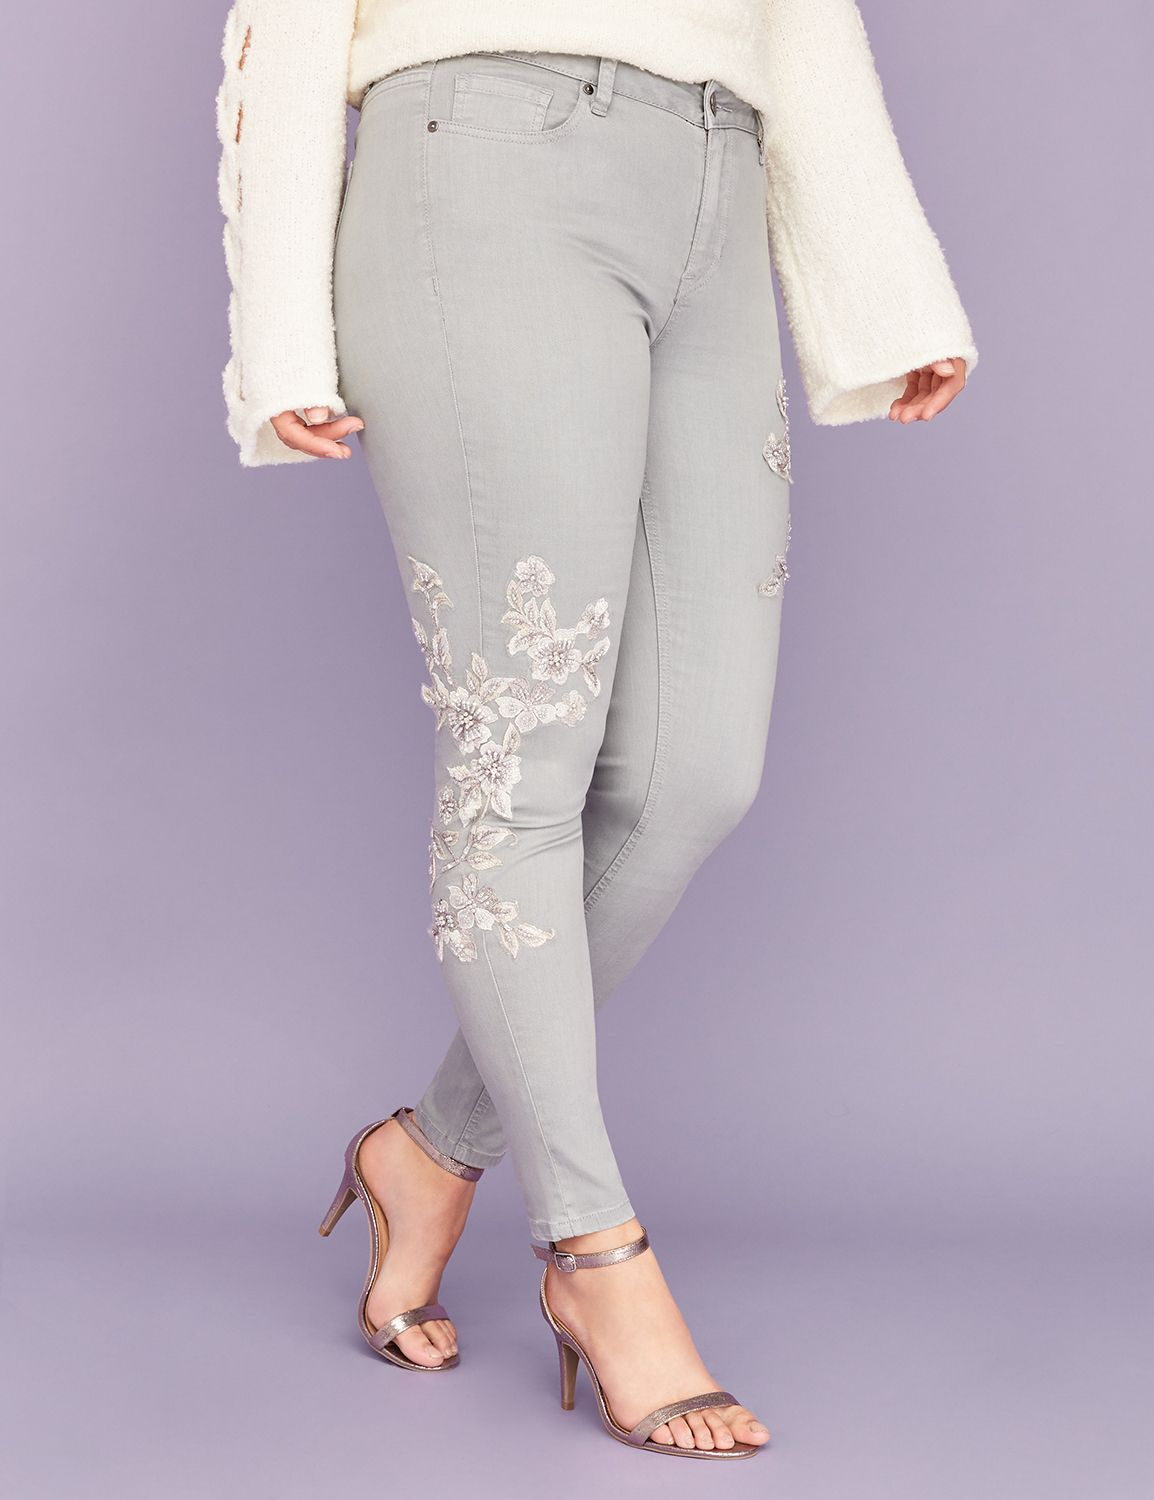 Petite Super Stretch Skinny Jean - Gray with Floral Applique